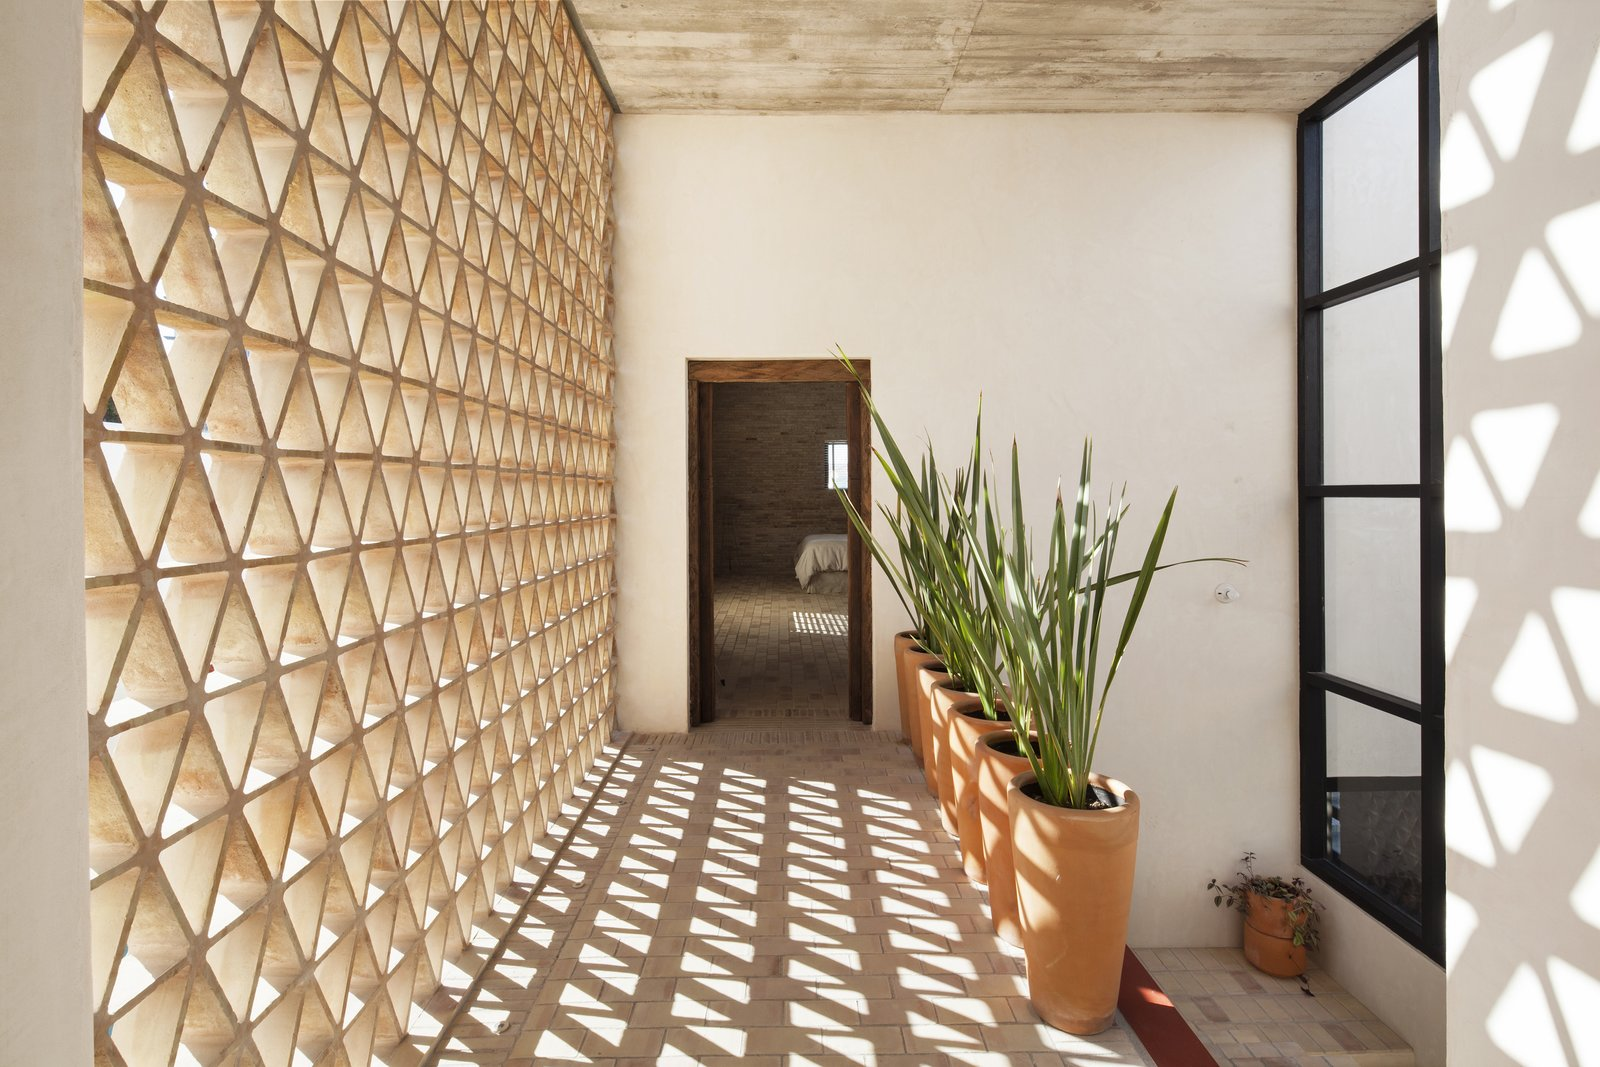 Aisle. Tagged: Hallway and Brick Floor.  Casa Iguana by OBRA BLANCA